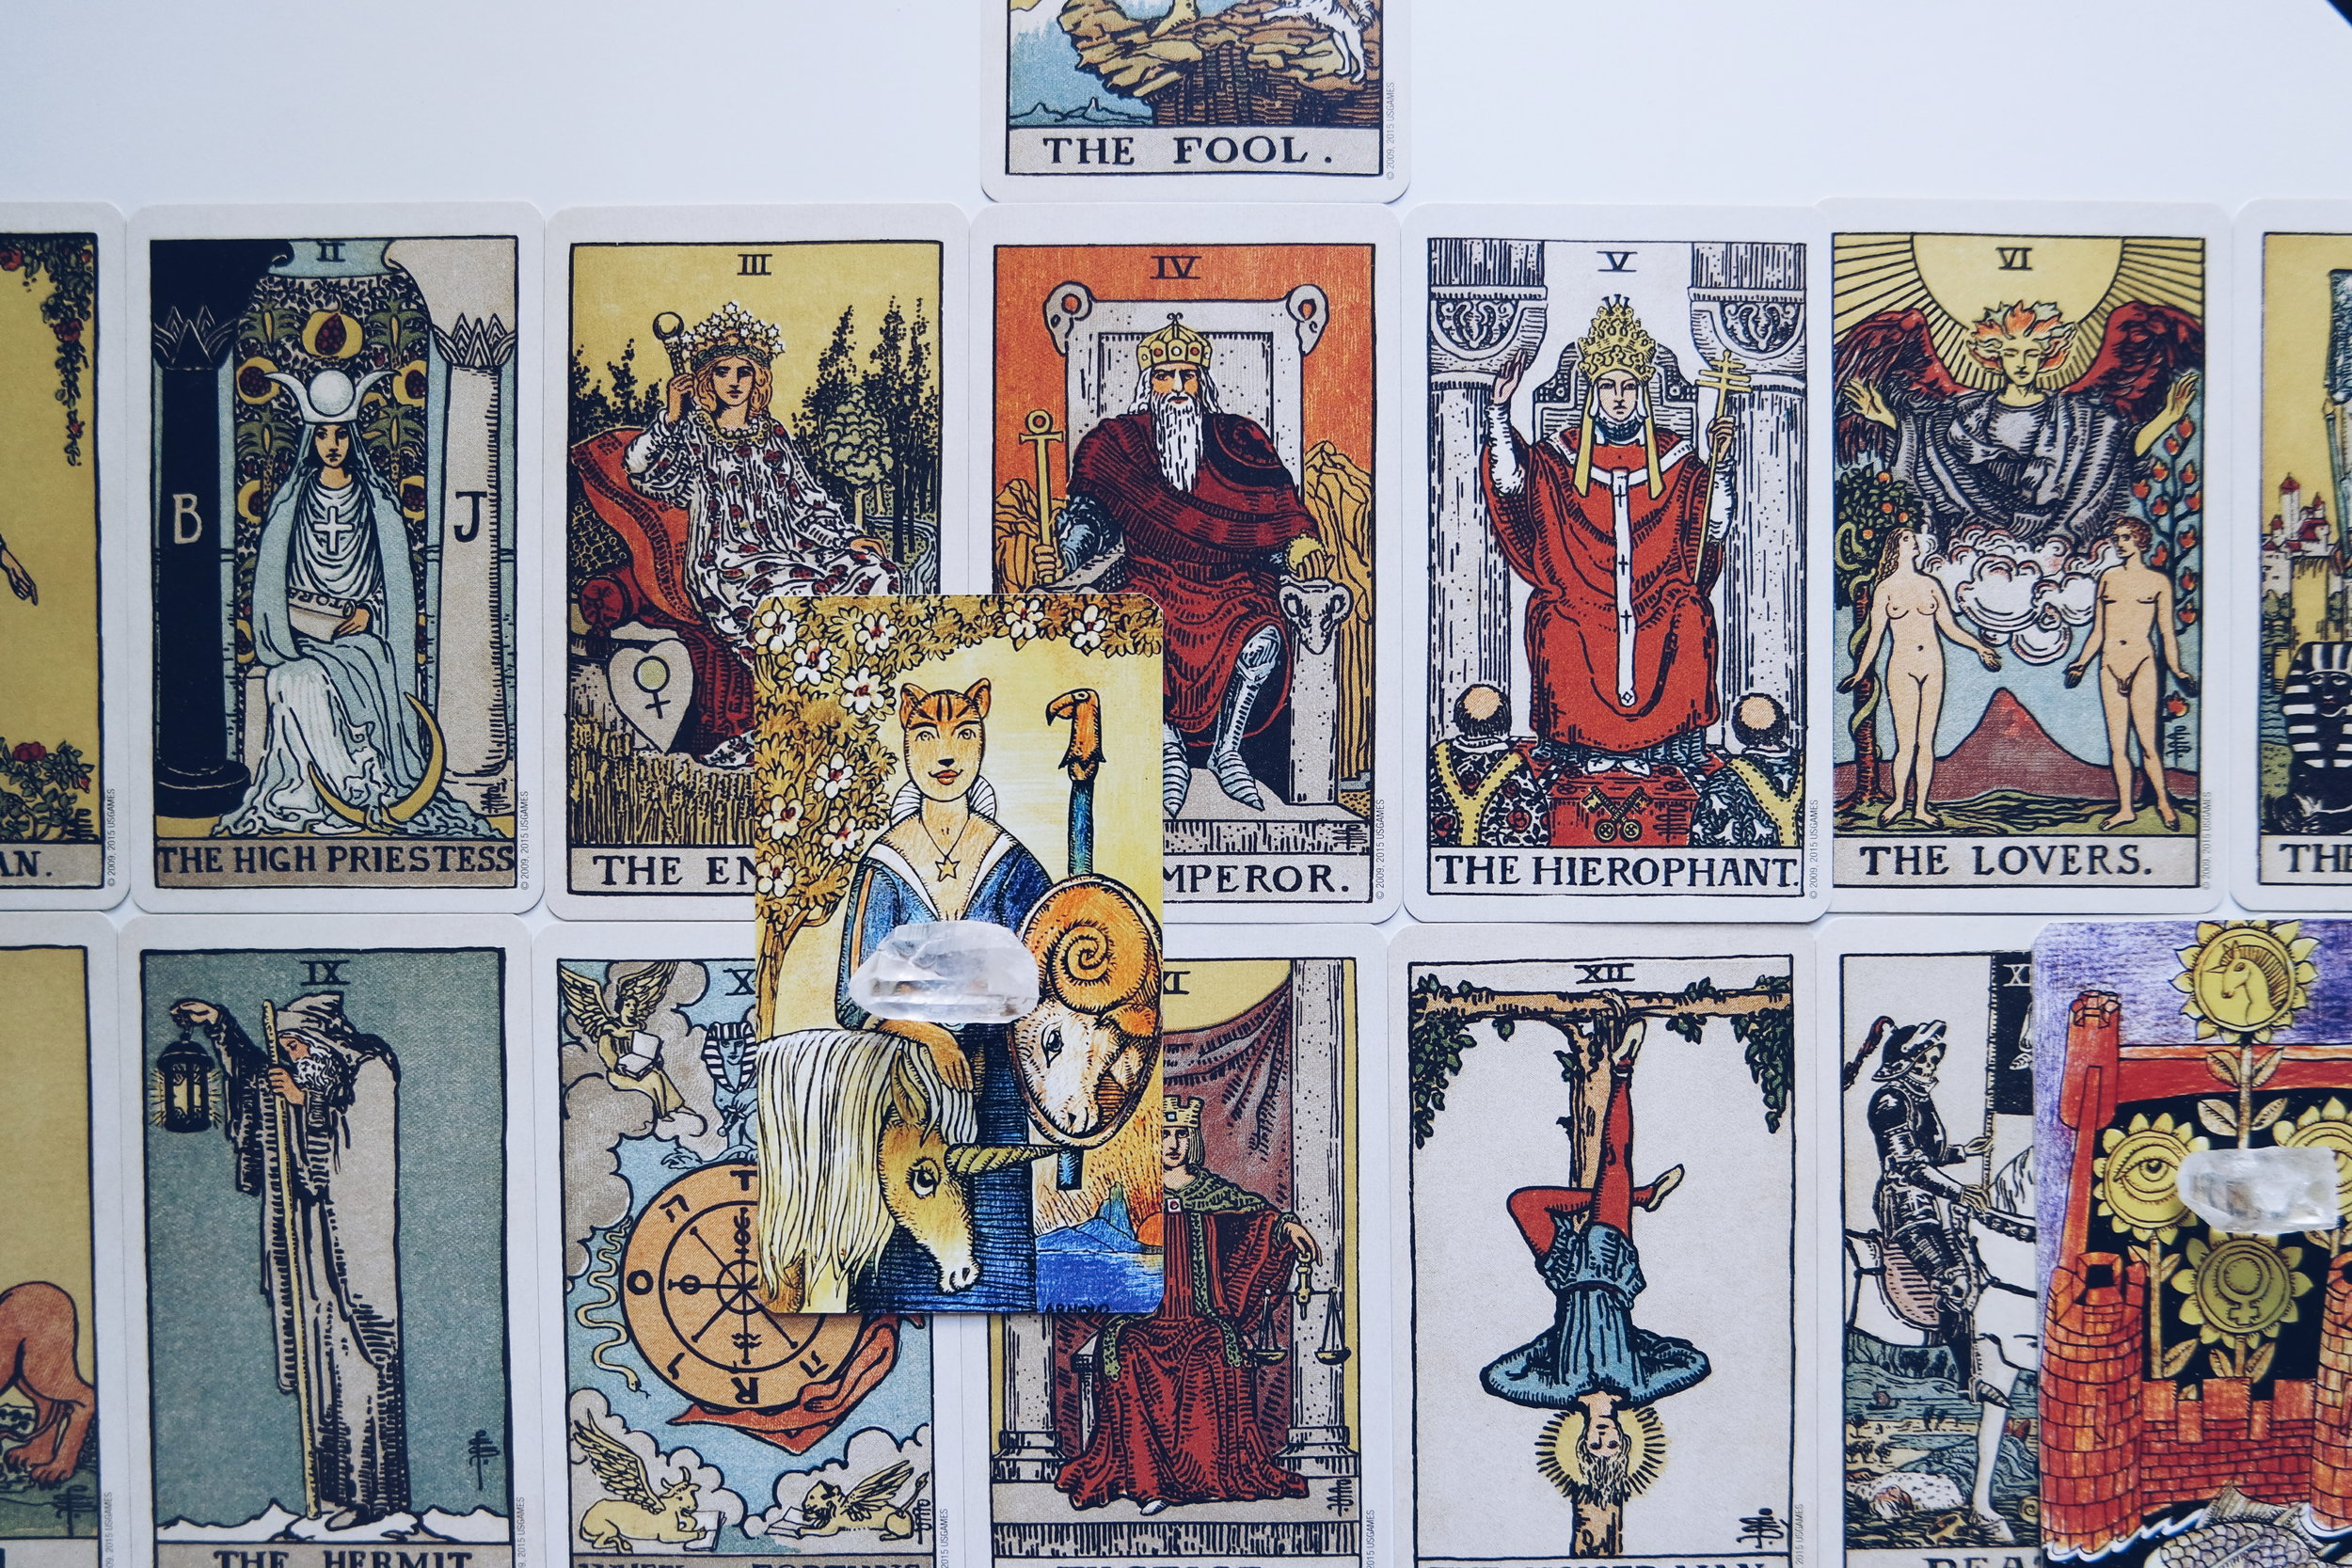 Pamela Colman Smith Centennial Tarot + Jolanda Den Tredjes Tarot or Swedish Witch Tarot